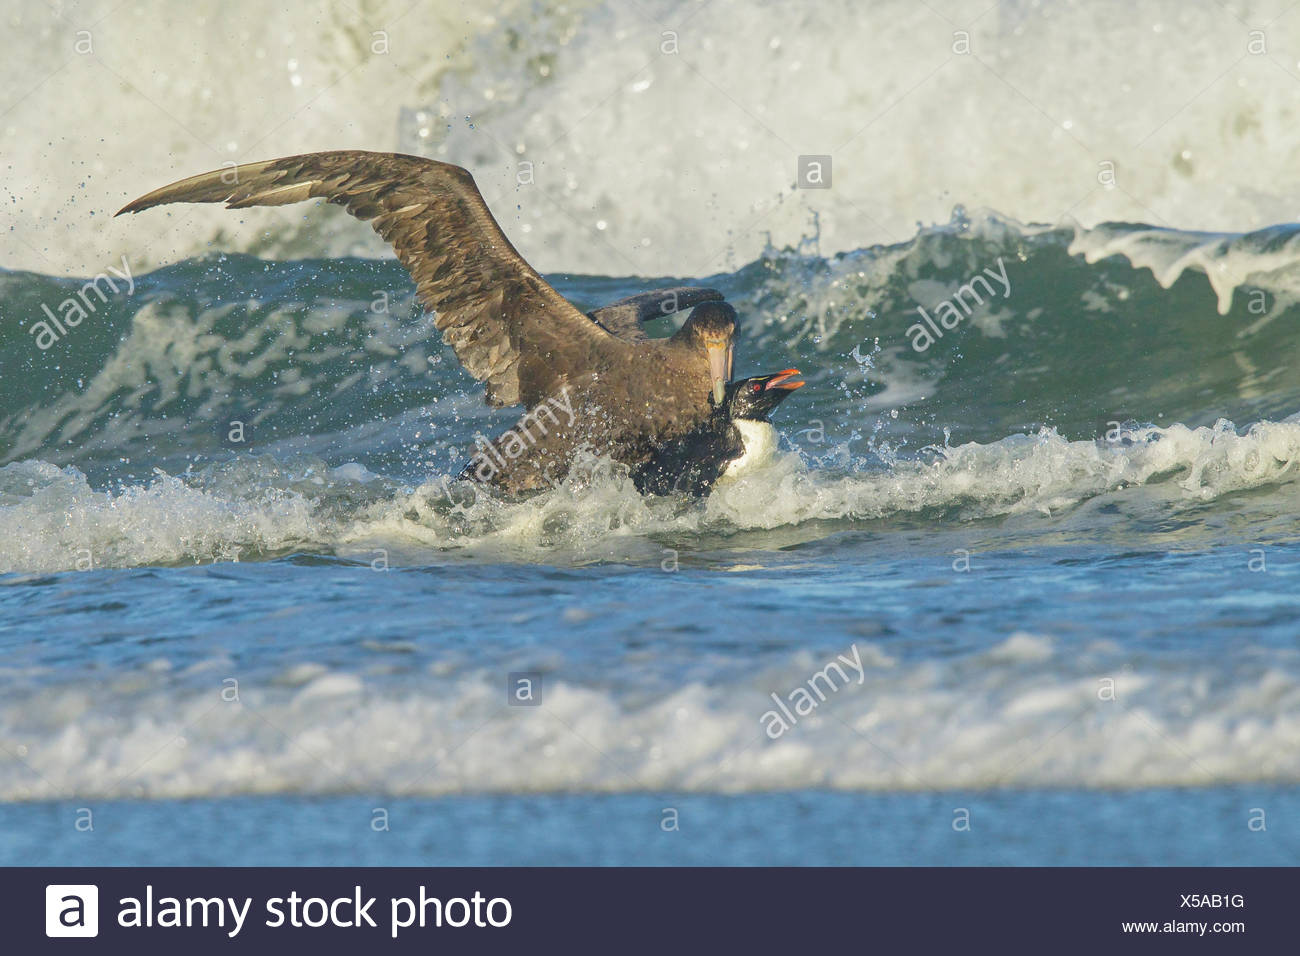 A Giant Petrel attacks a Rockhopper Penguin (Eudyptes chrysocome) as it emerges from the ocean in the Falkland Islands. - Stock Image